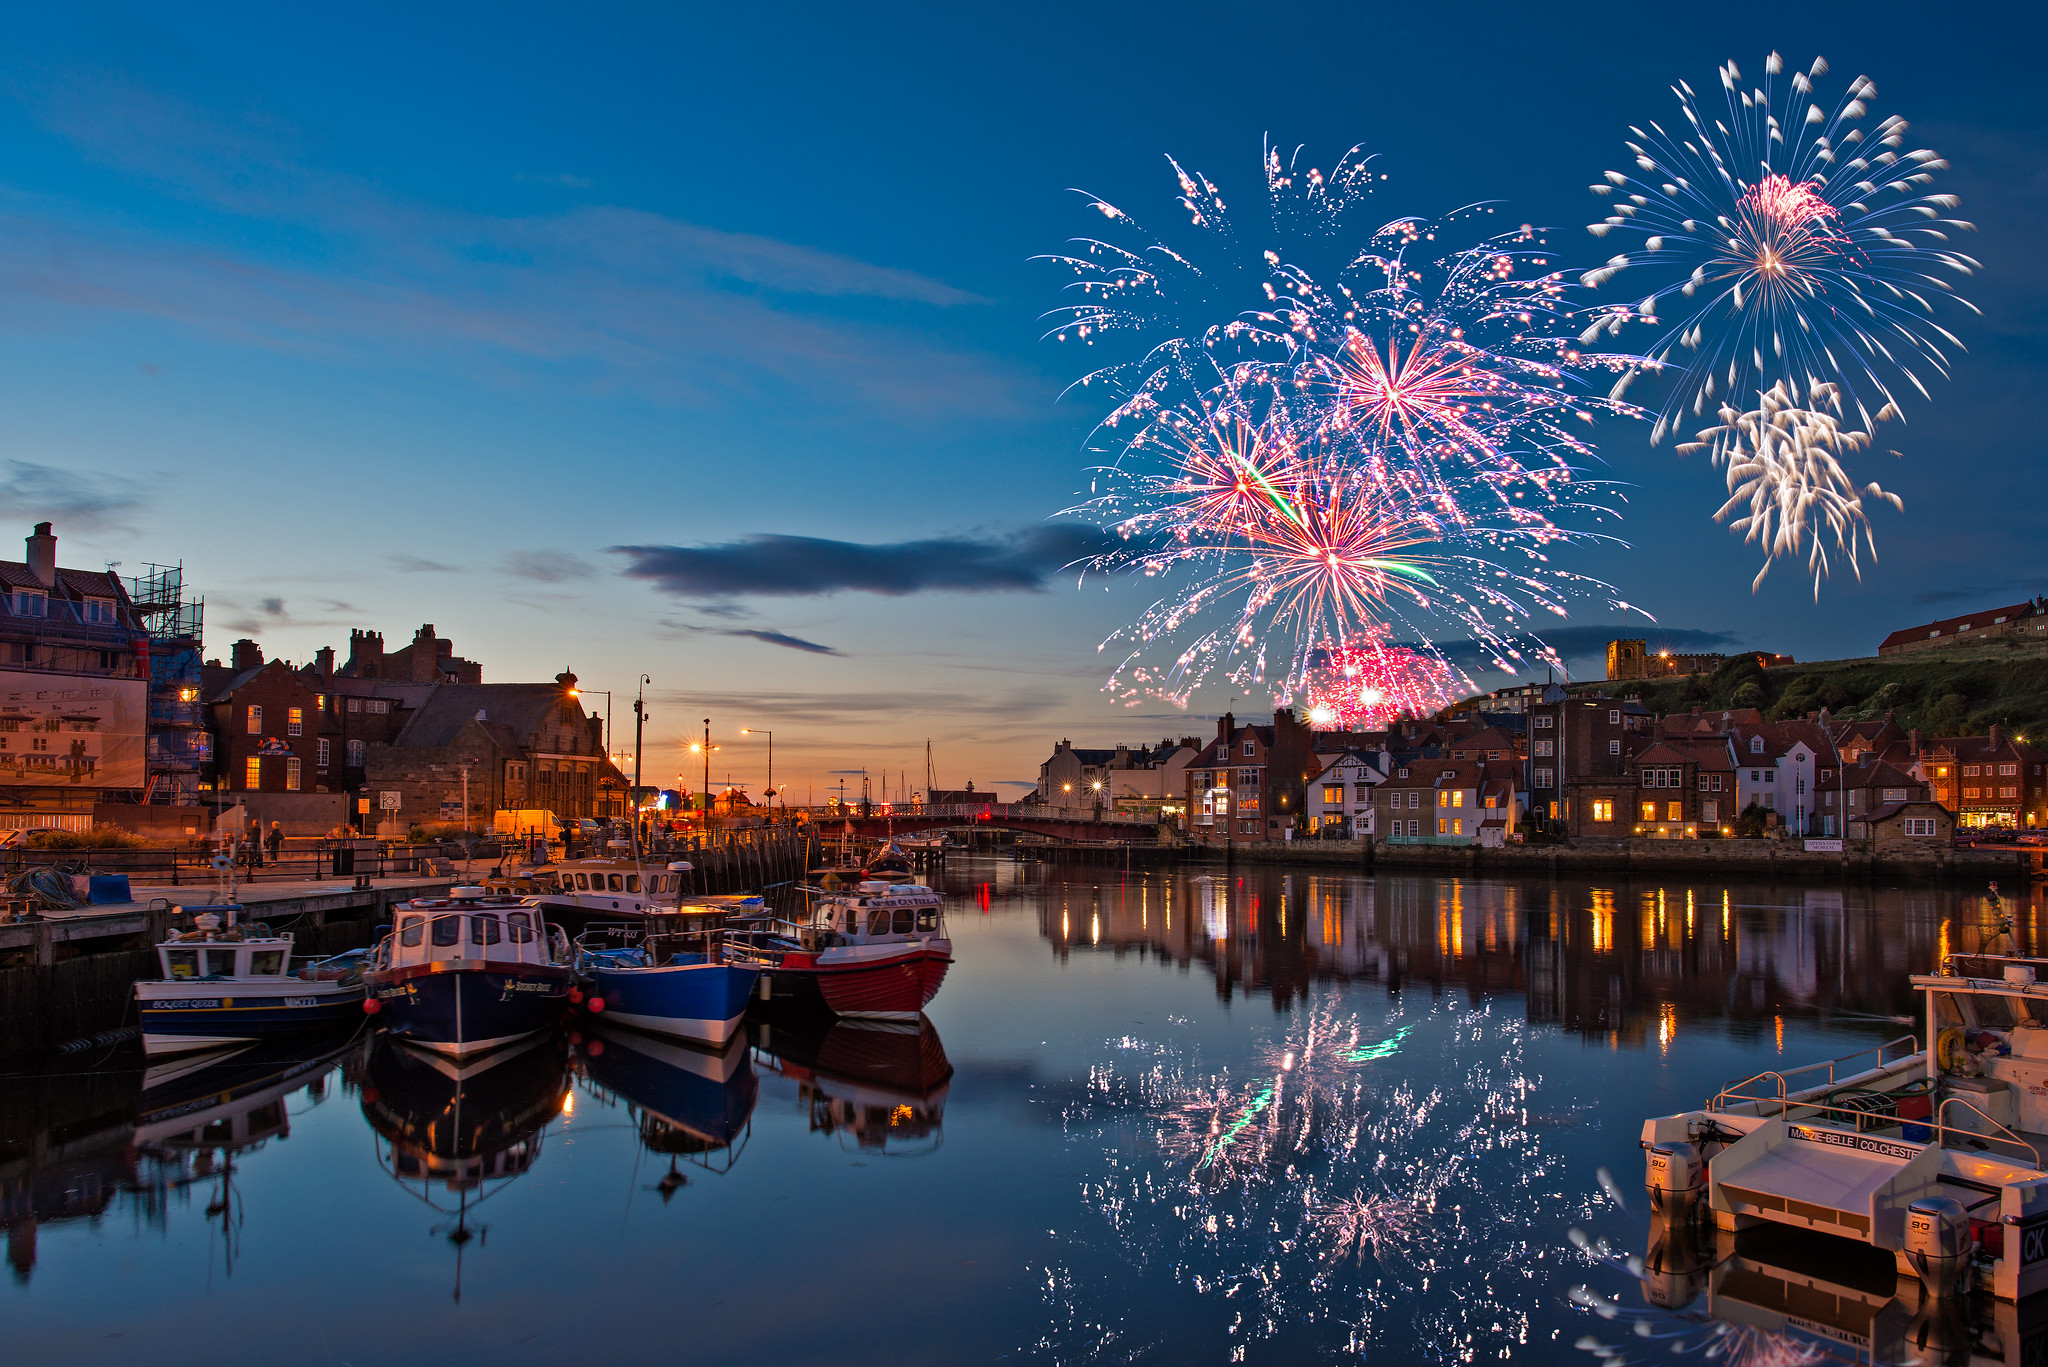 Fireworks over Whitby harbour